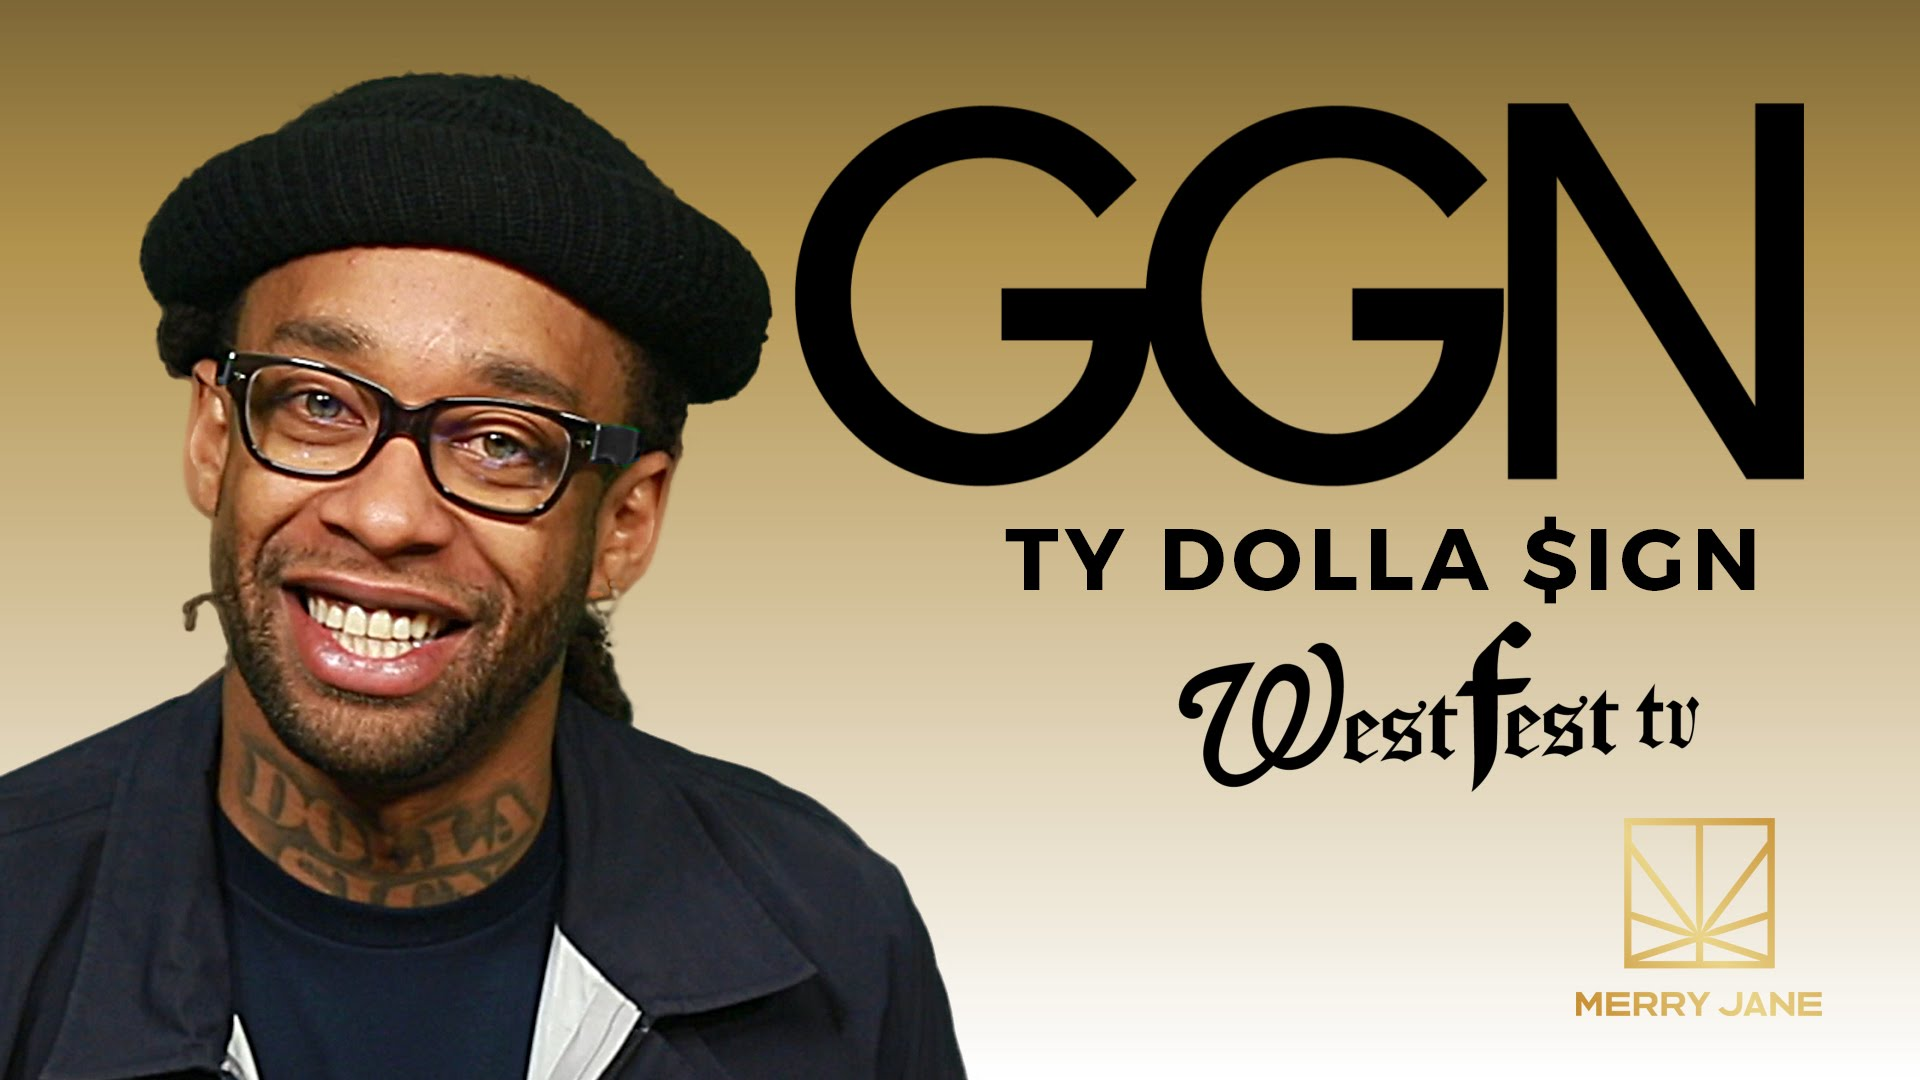 Ty Dolla $ign Talks New Album, His Brother, Studio Life & More On 'GGN' (VIDEO)